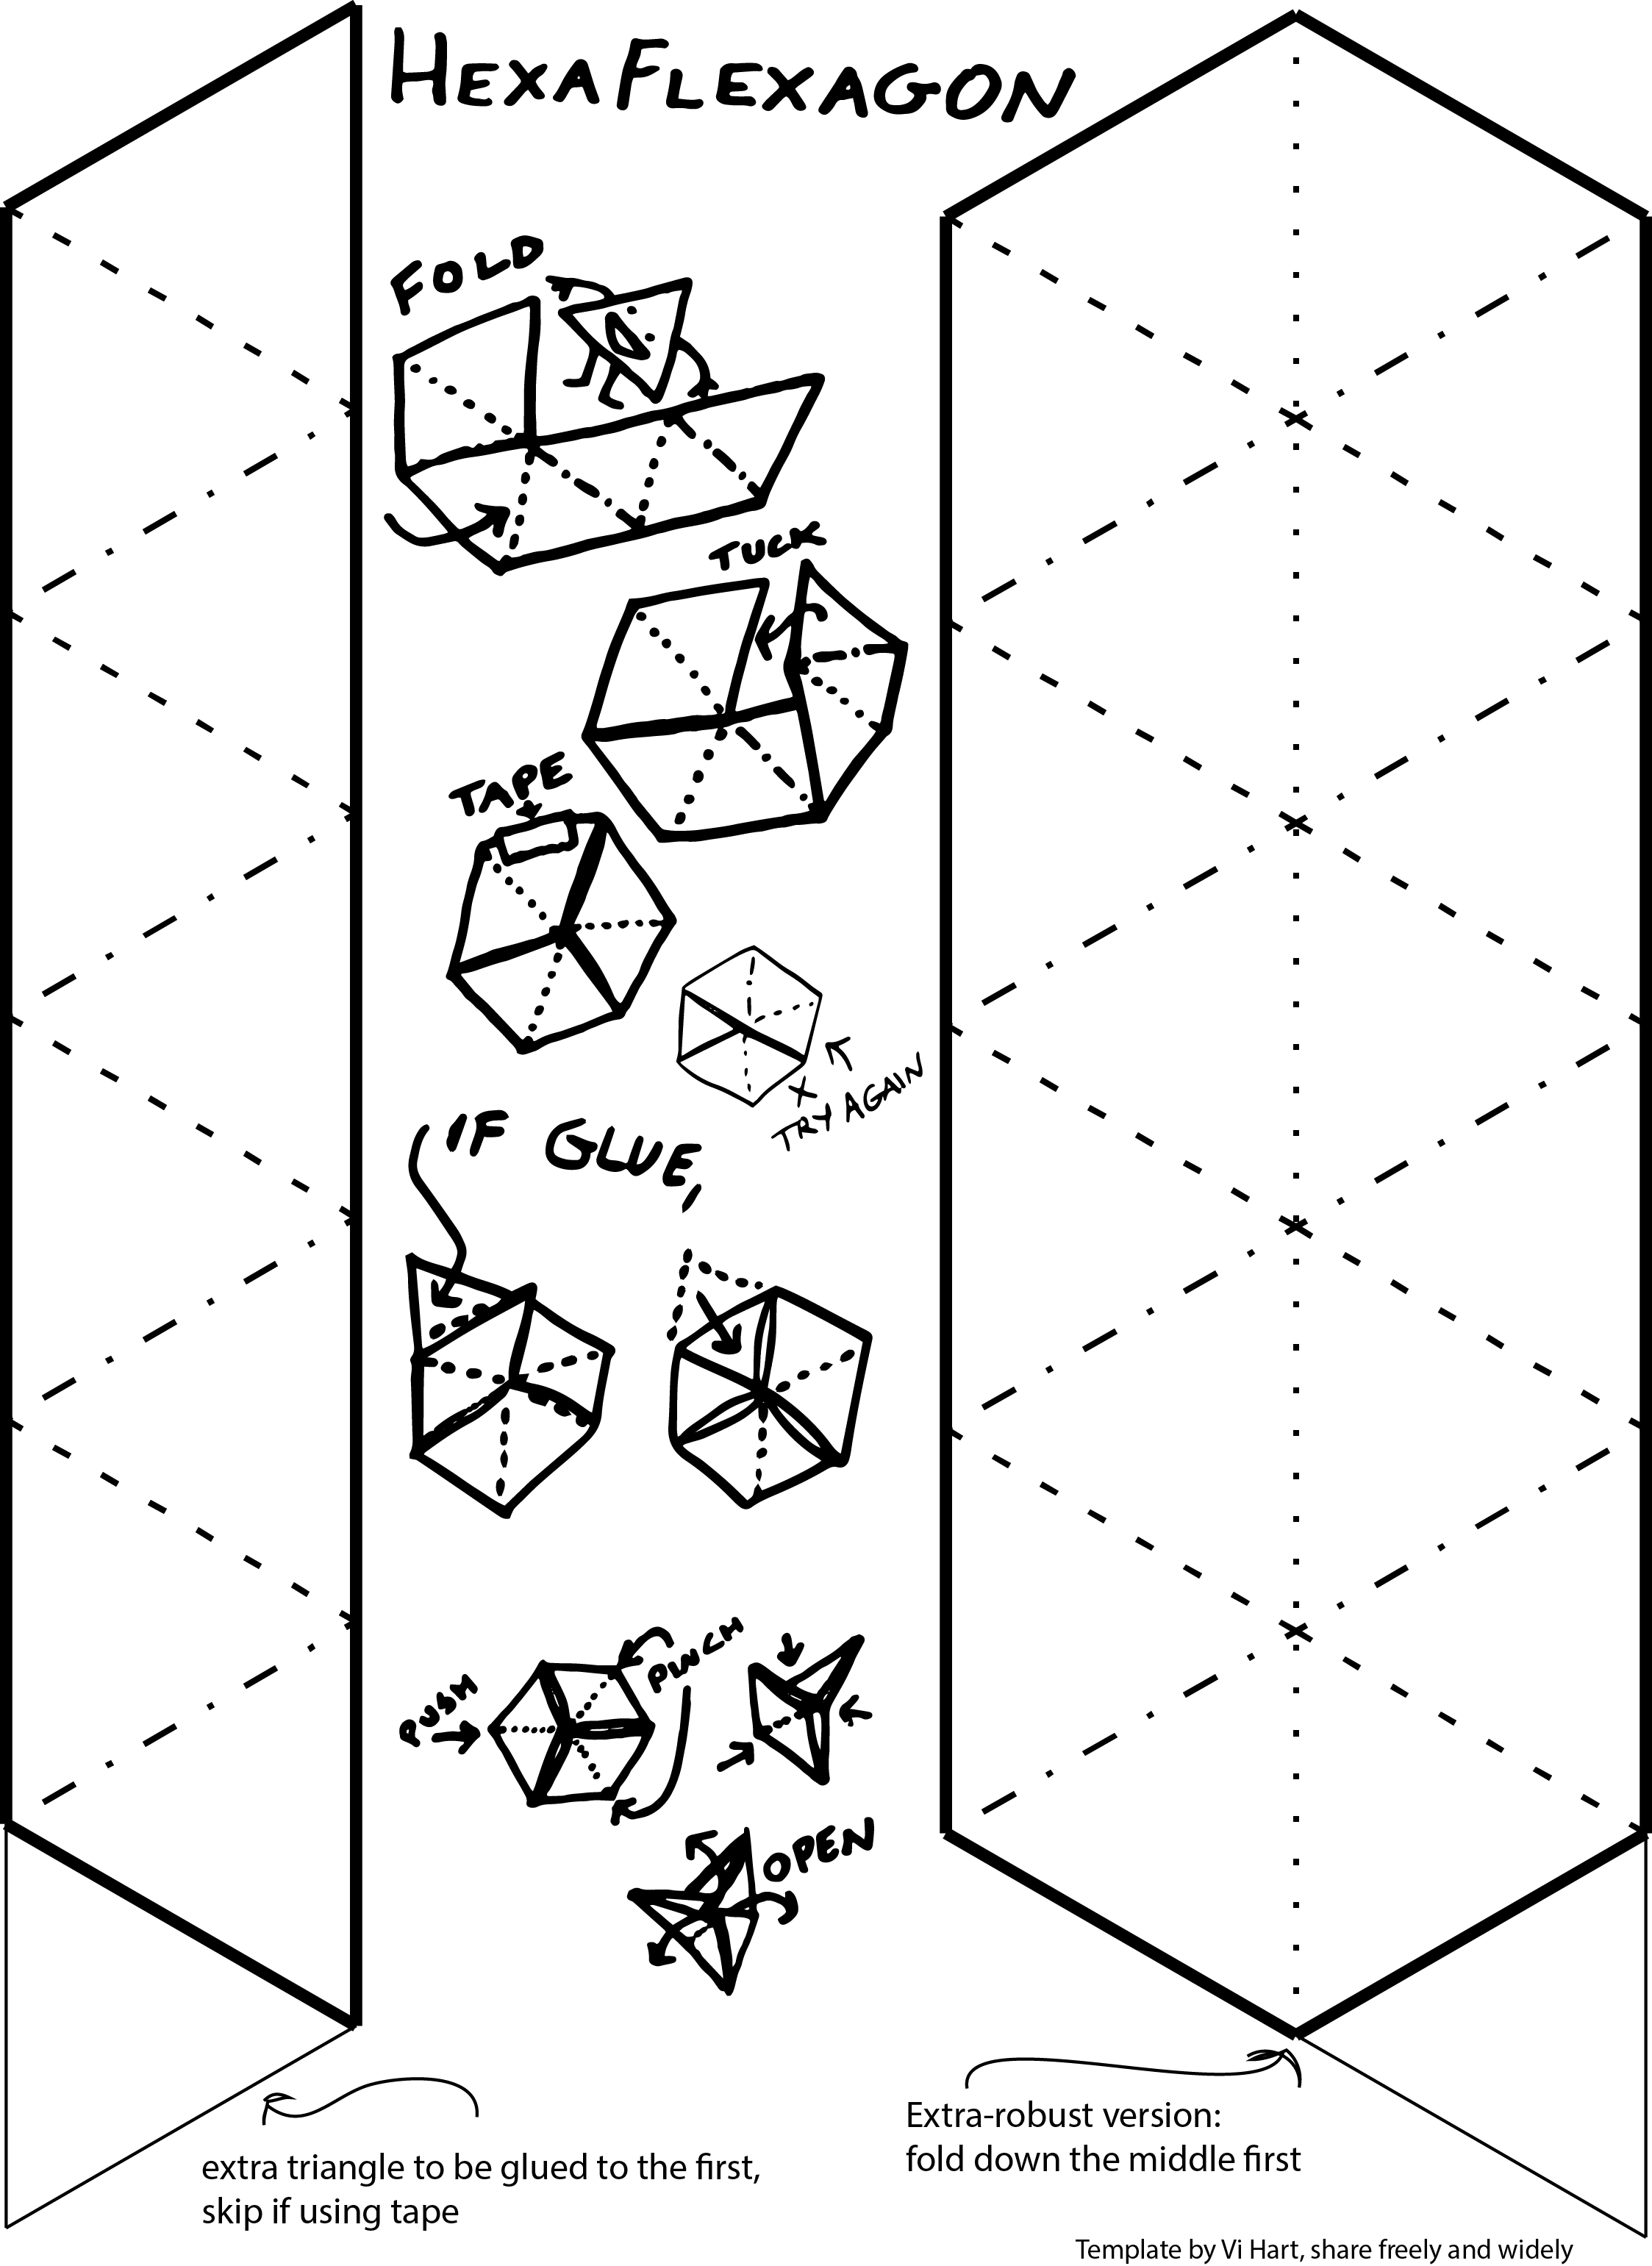 The gallery for blank papercraft templates for Hexahexaflexagon template